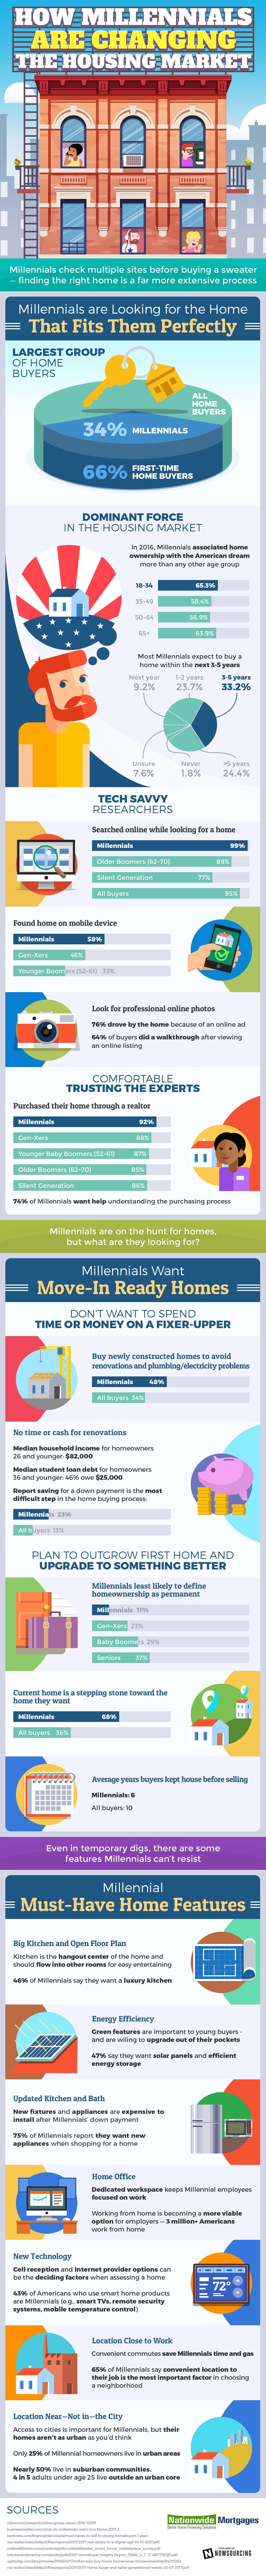 Millennials are changing the game when it comes to the housing market. Tech savvy and mobile, millennials know exactly what they are looking for.